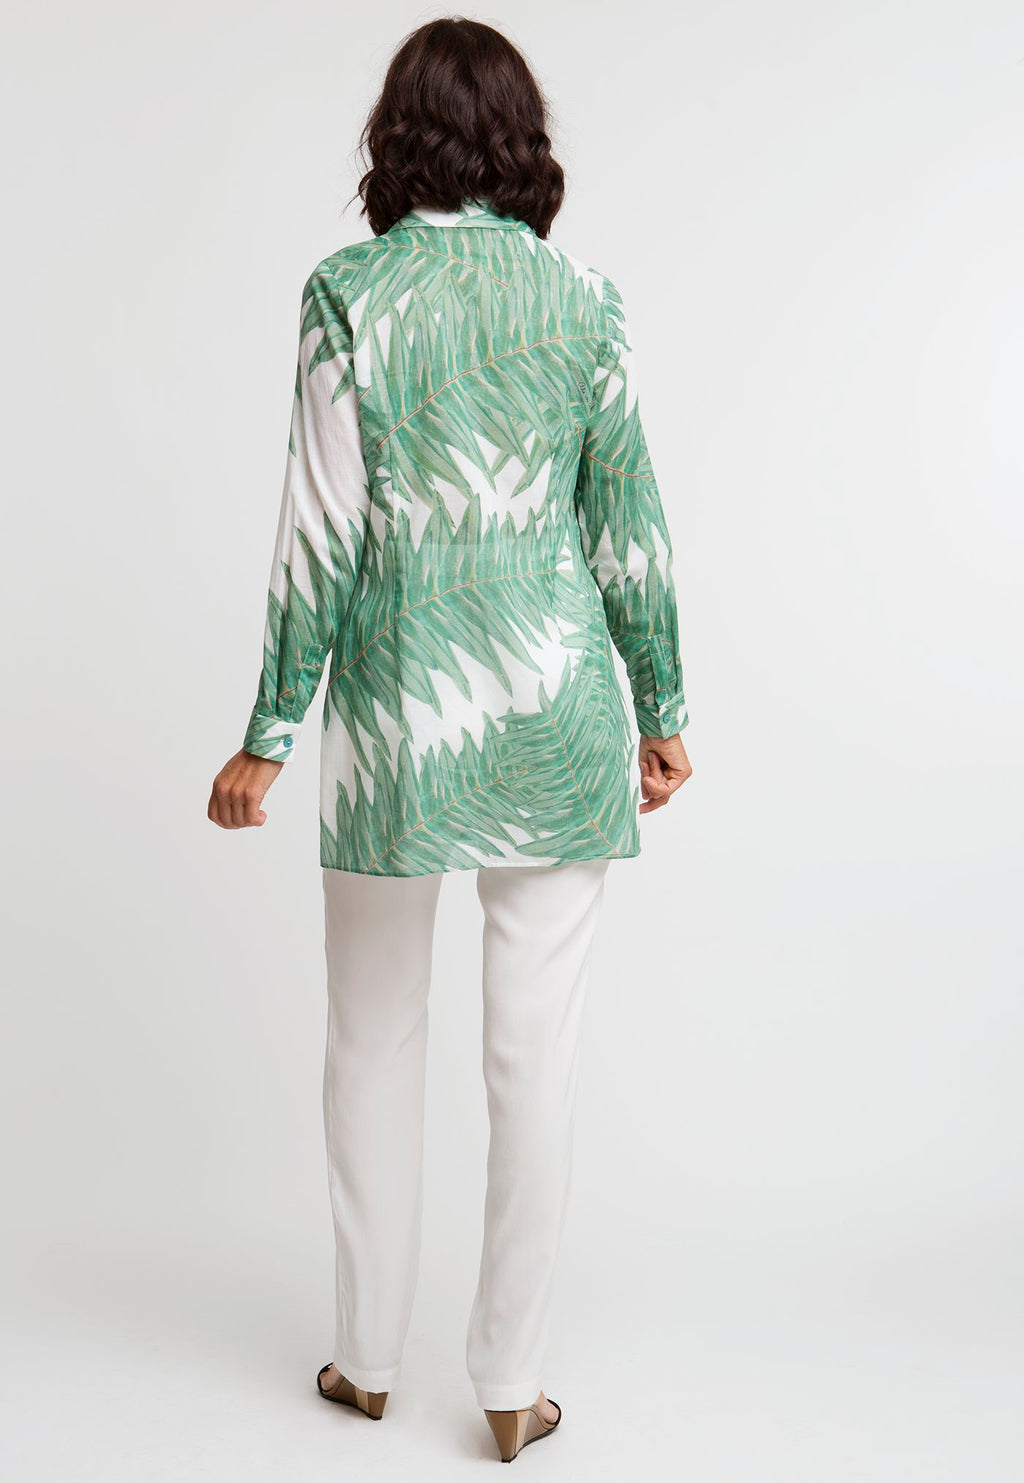 Ala Blouse in Queen Palm back view